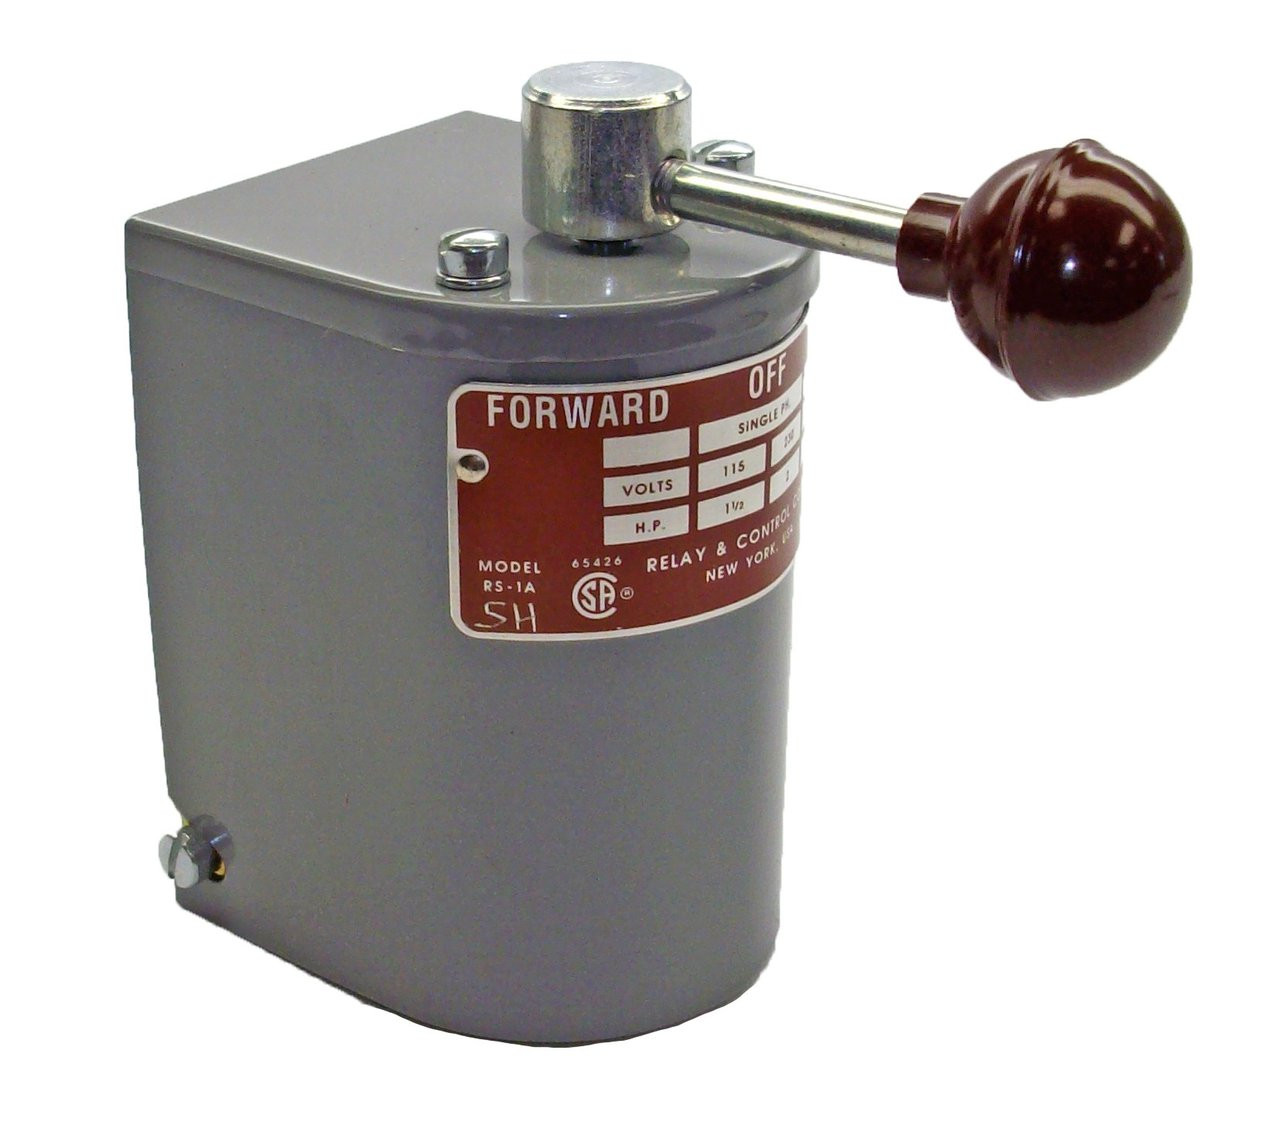 1 5 hp 2 hp electric motor reversing drum switch single phase only position maintained rs 1a sh [ 1280 x 1139 Pixel ]